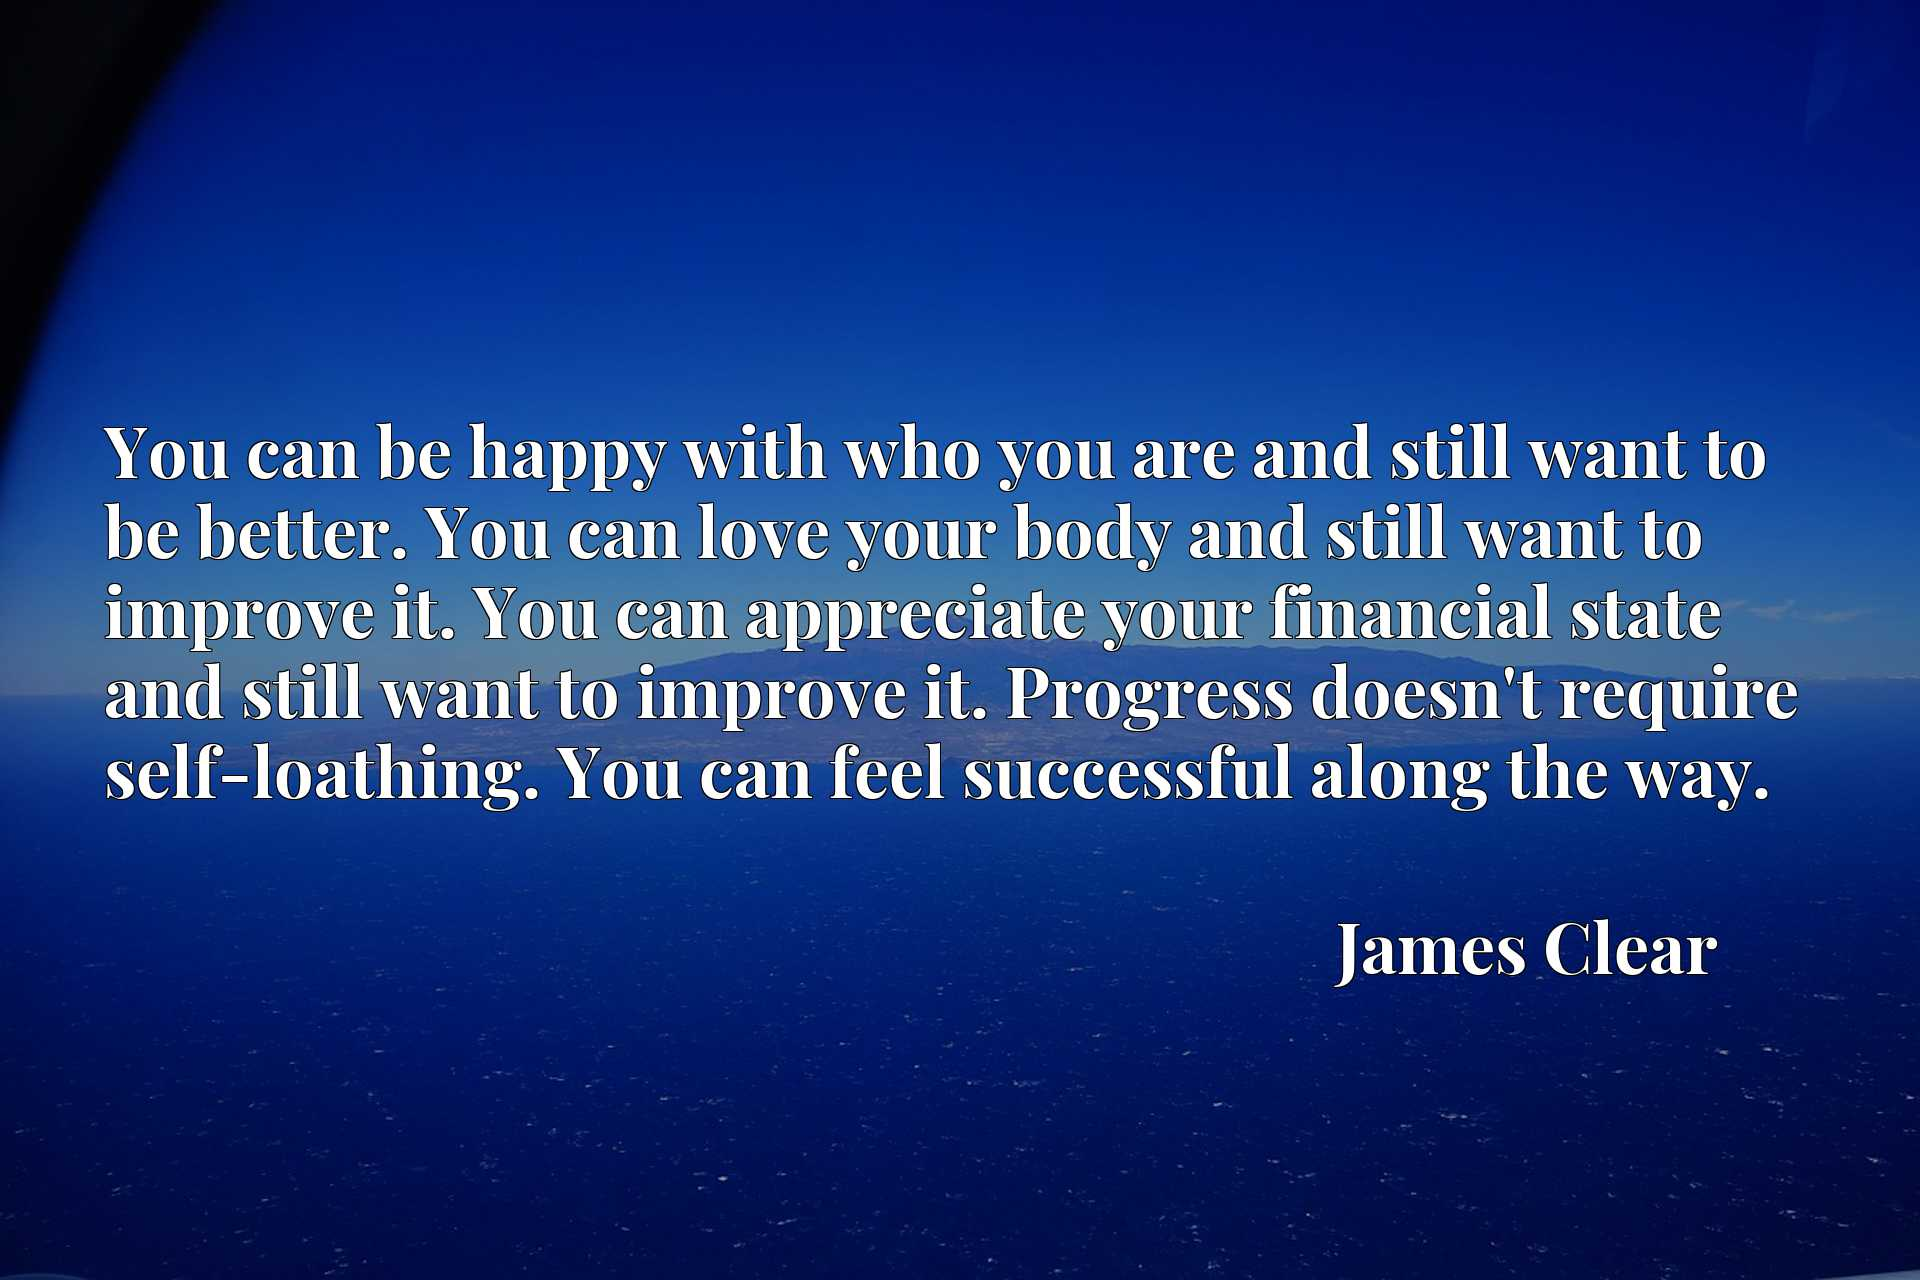 You can be happy with who you are and still want to be better. You can love your body and still want to improve it. You can appreciate your financial state and still want to improve it. Progress doesn't require self-loathing. You can feel successful along the way.